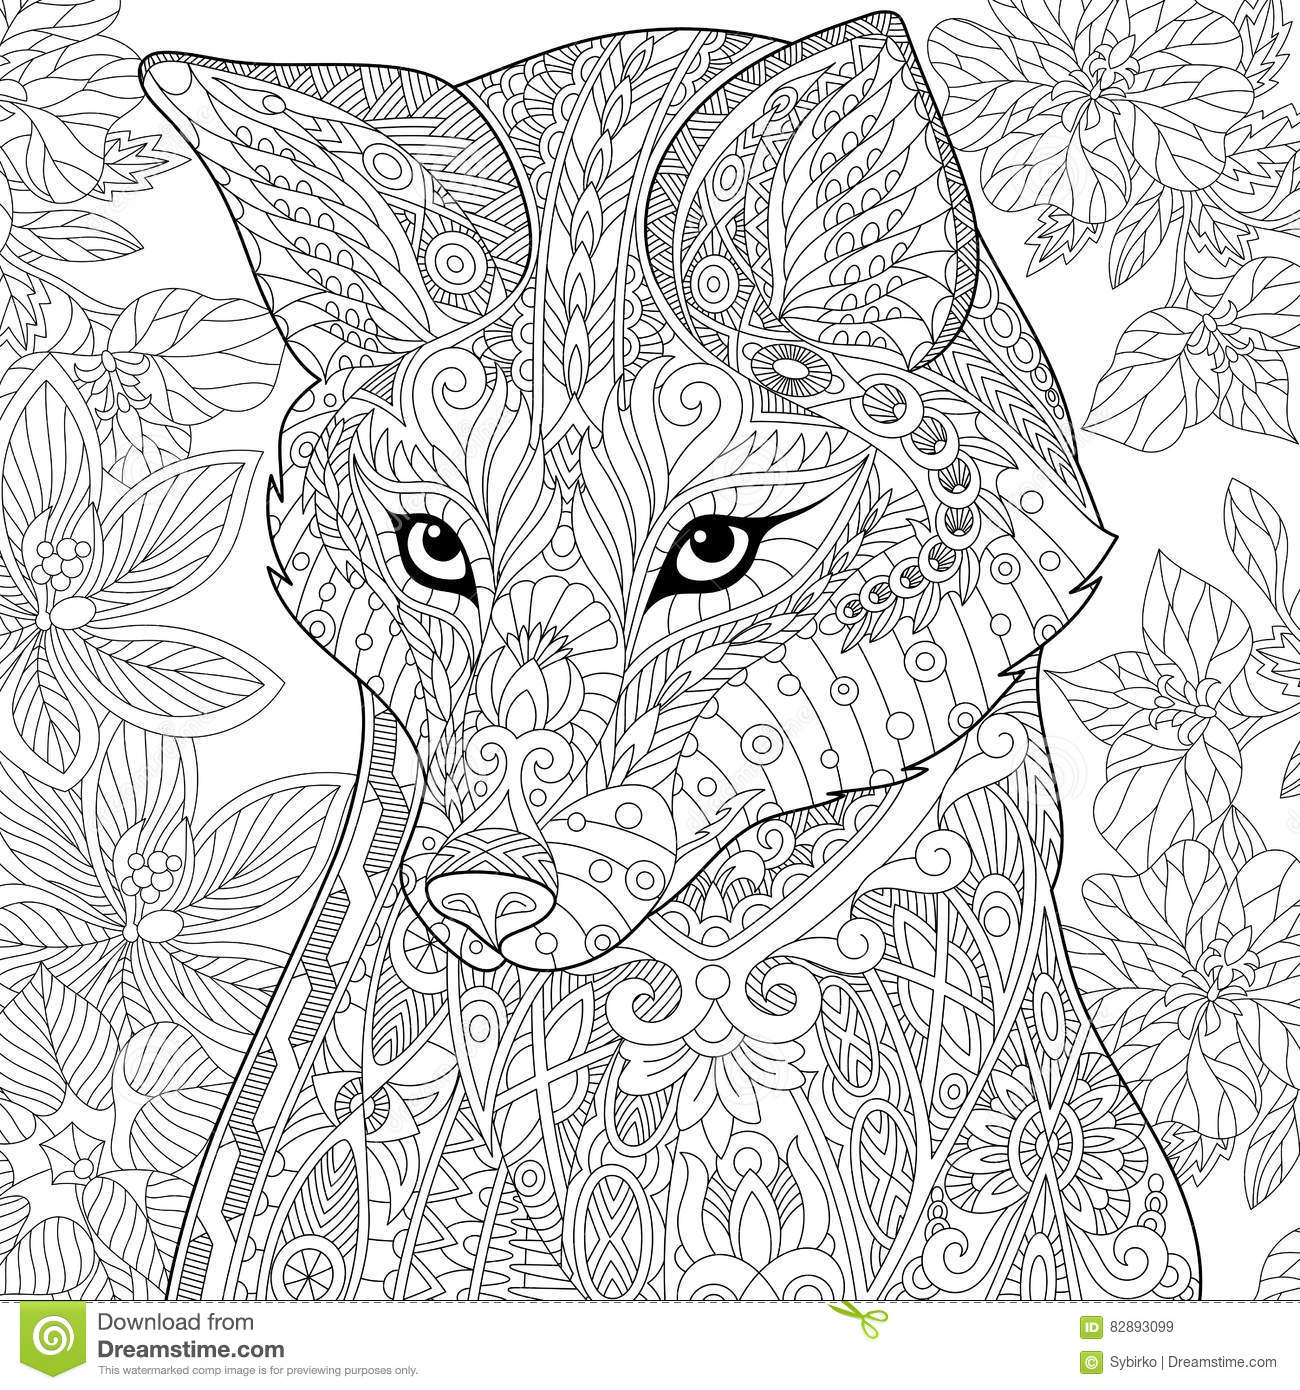 Stress Coloring Pages Animals : Zentangle stylized fox stock vector illustration of eyes